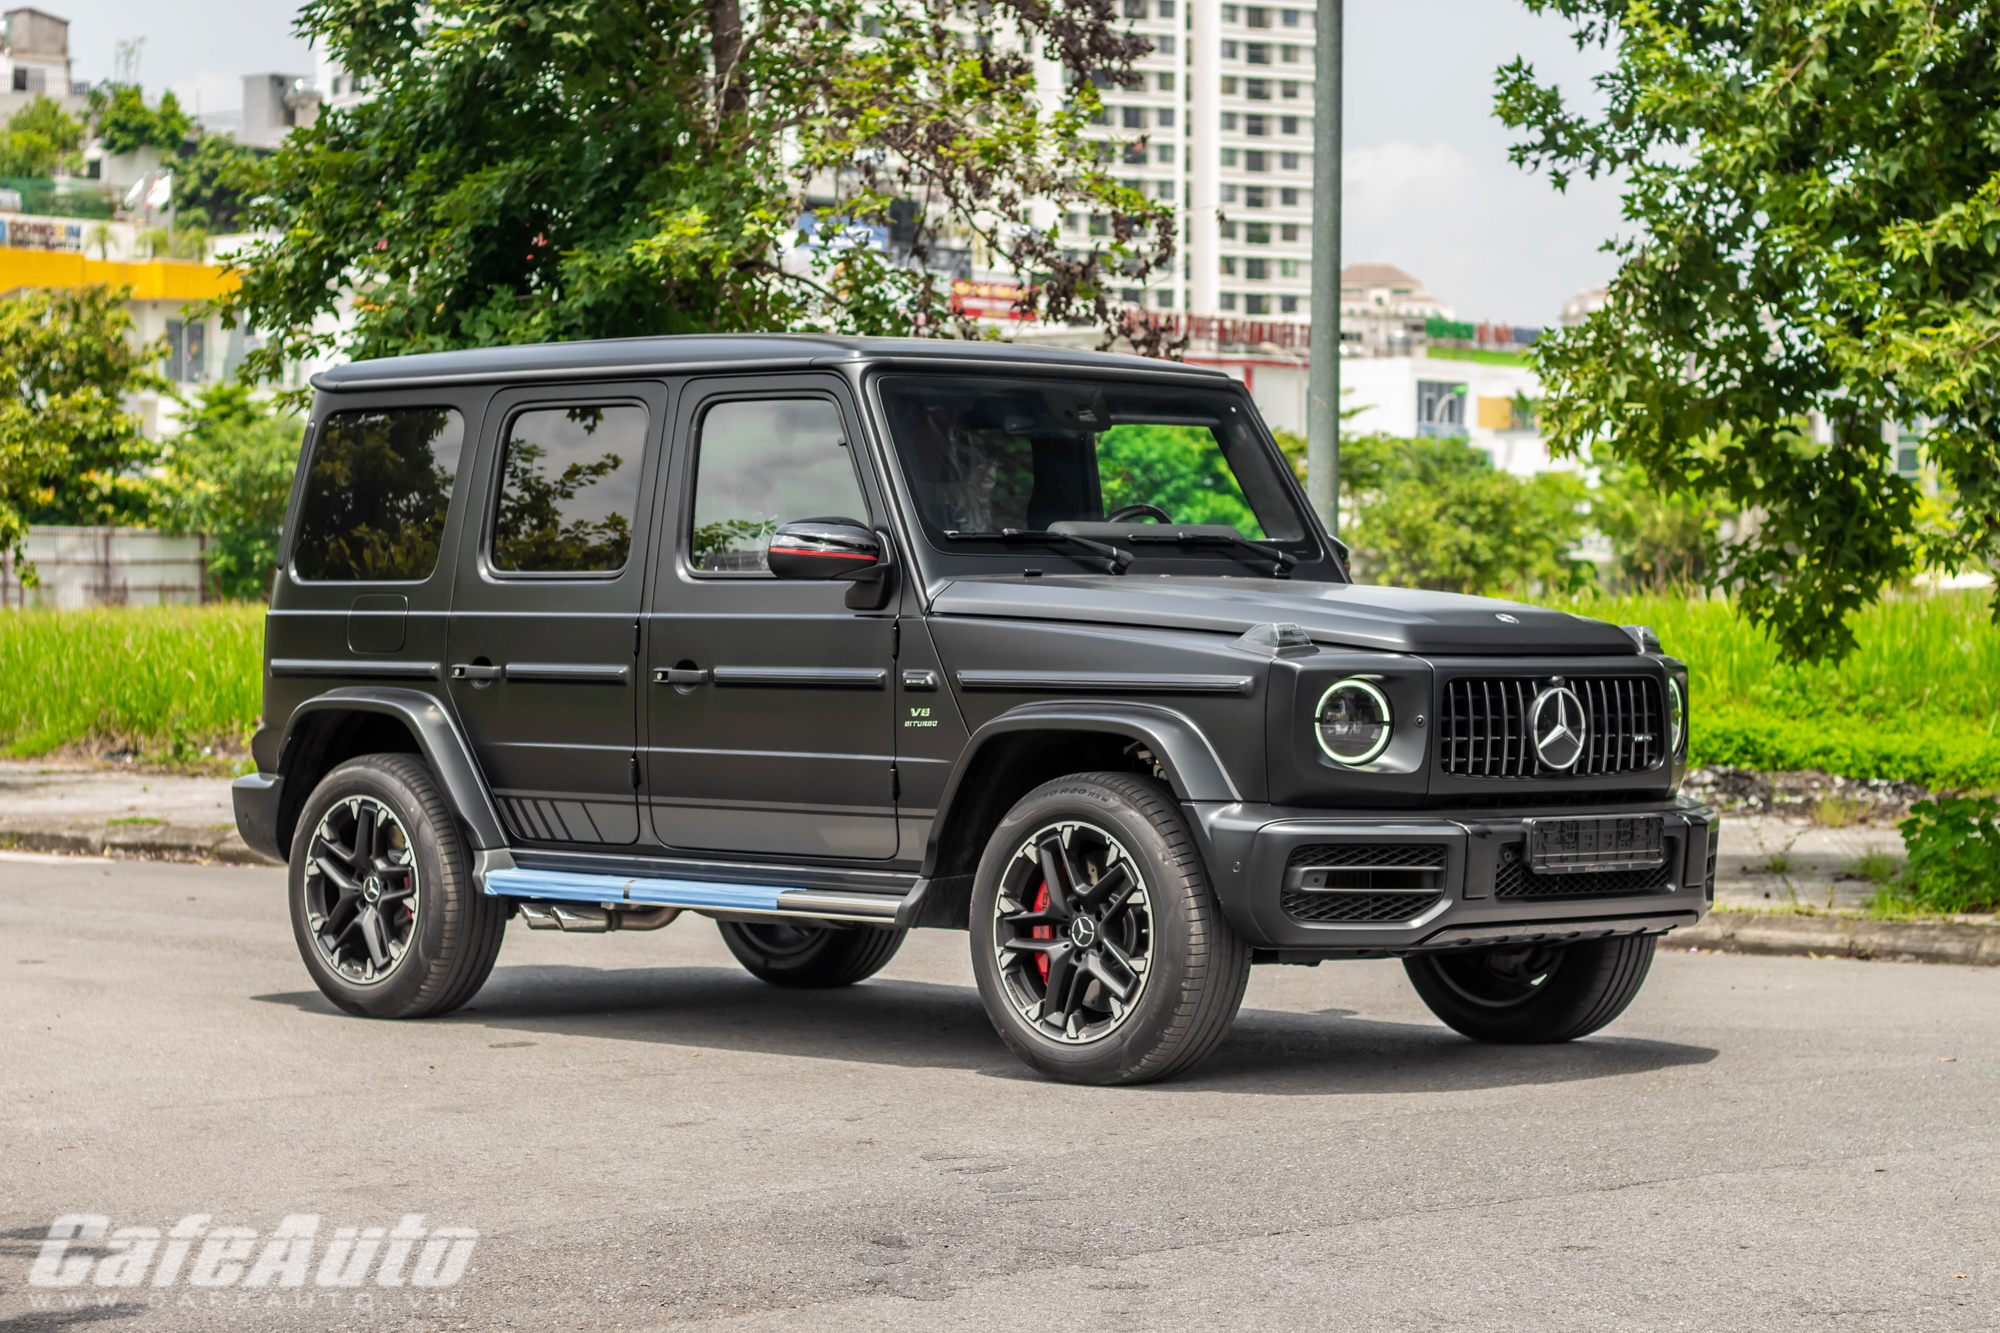 MercedesG63TrailPackage-cafeautovn-1